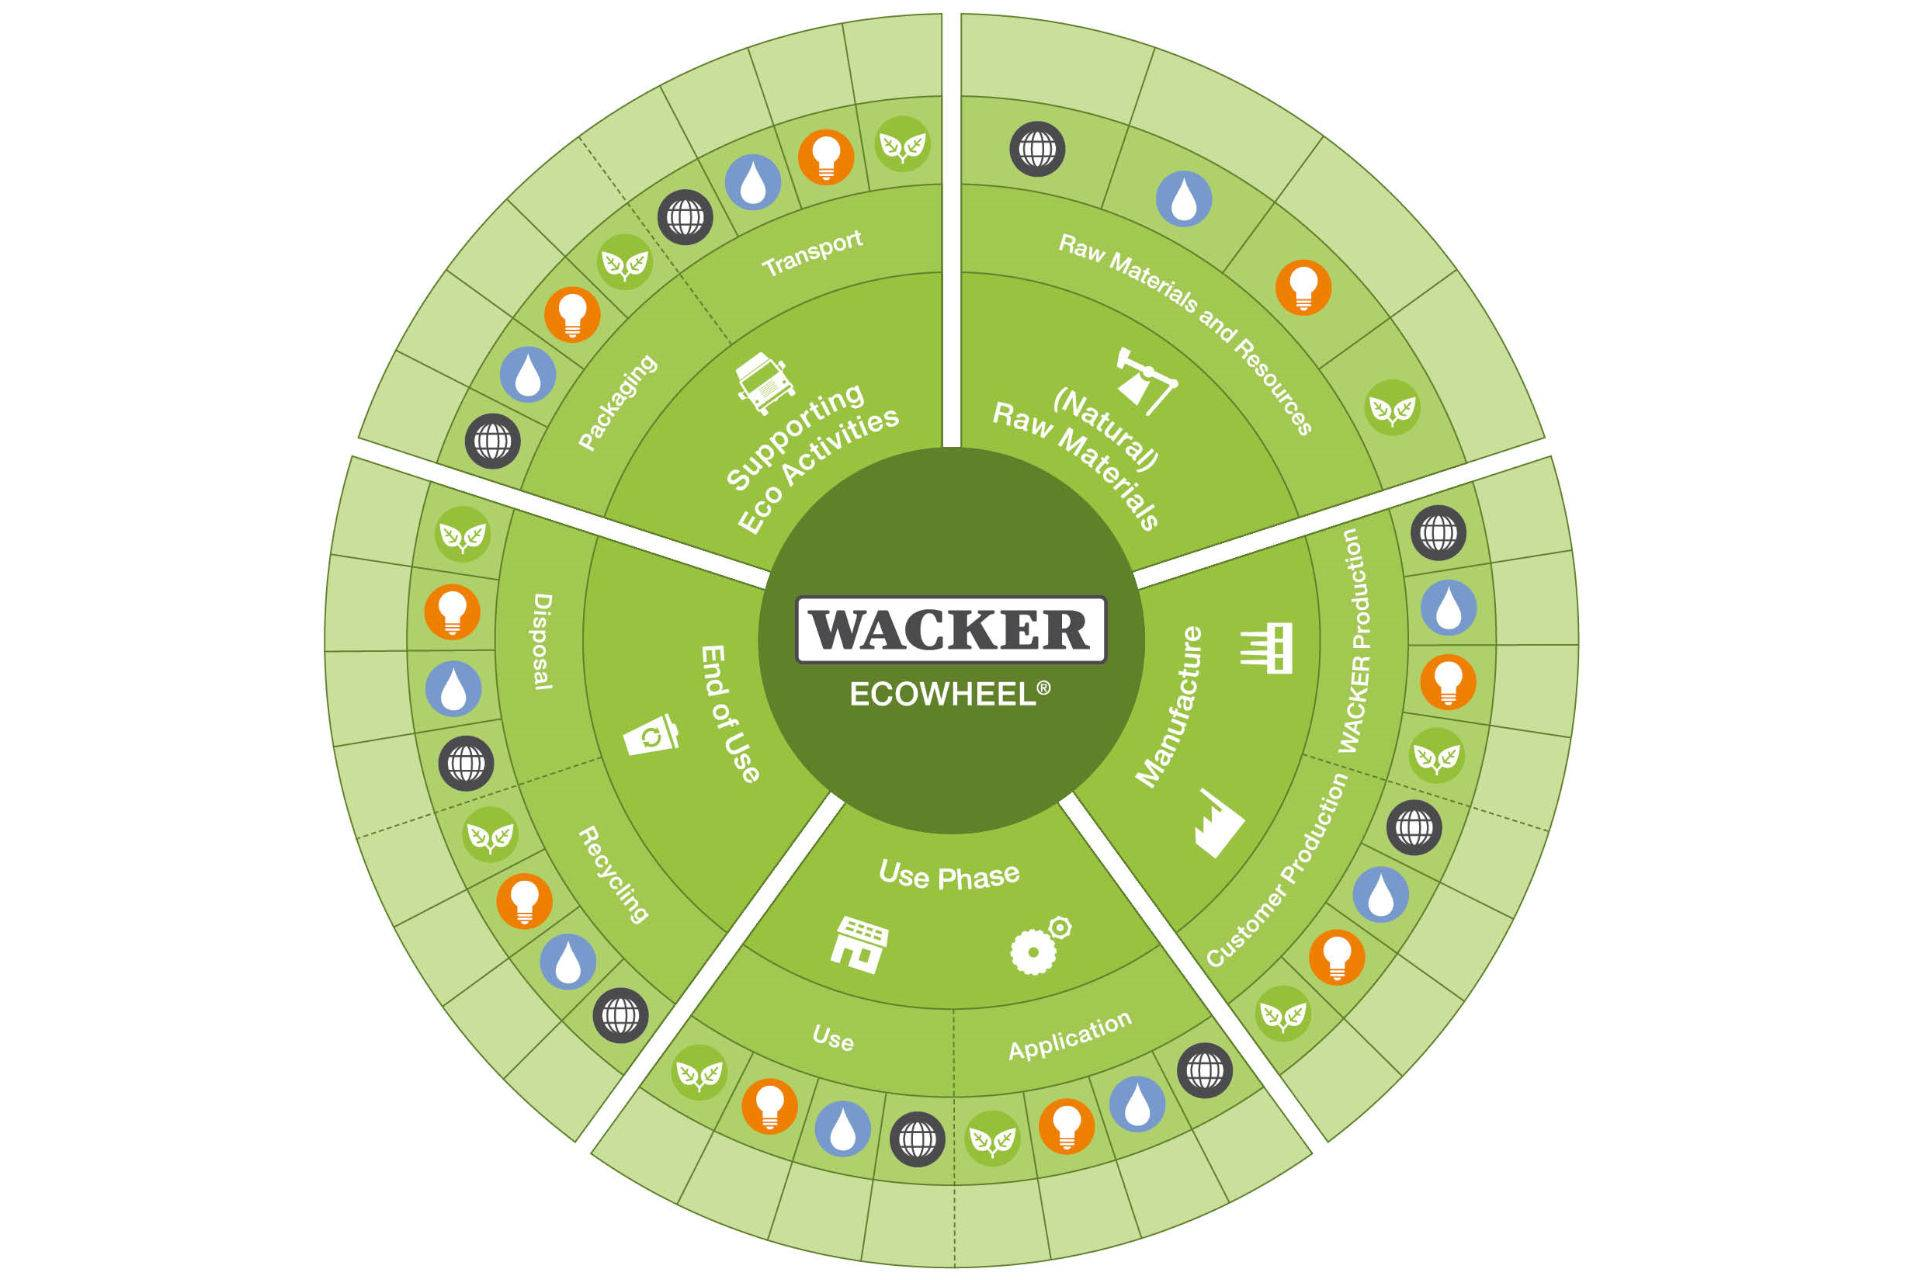 WACKER ECOWHEEL diagram